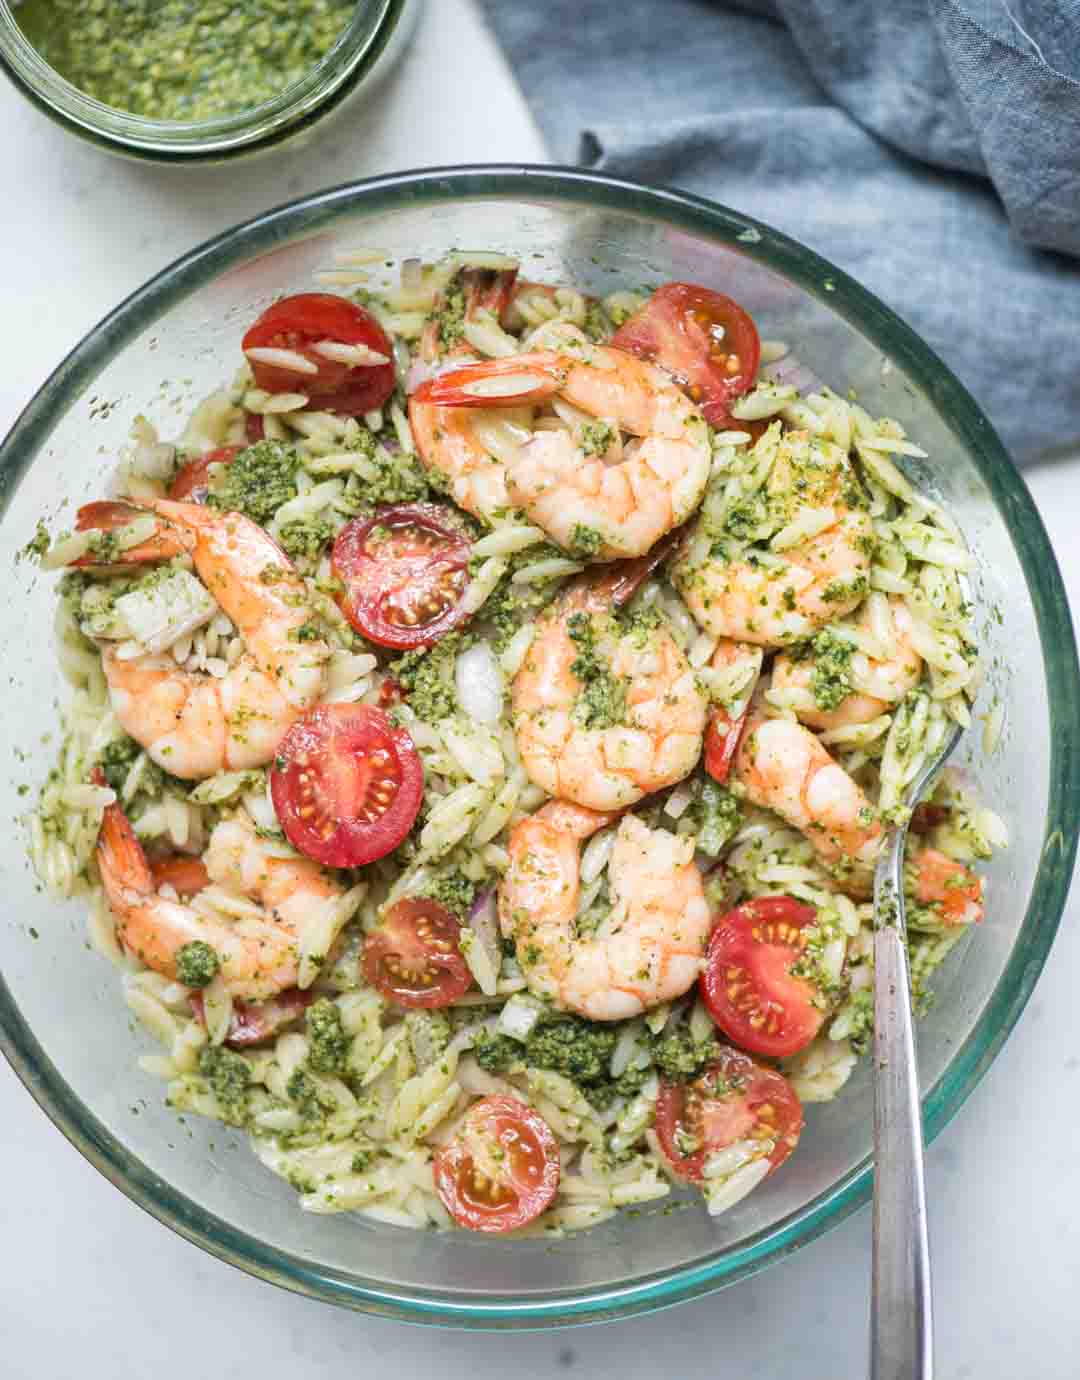 Orzo salad is loaded with Juicy shrimp, cherry tomatoes, onion and everything is tossed in fresh basil pesto. This refreshing salad can be served as a main dish or as a side dish in summer barbeque.